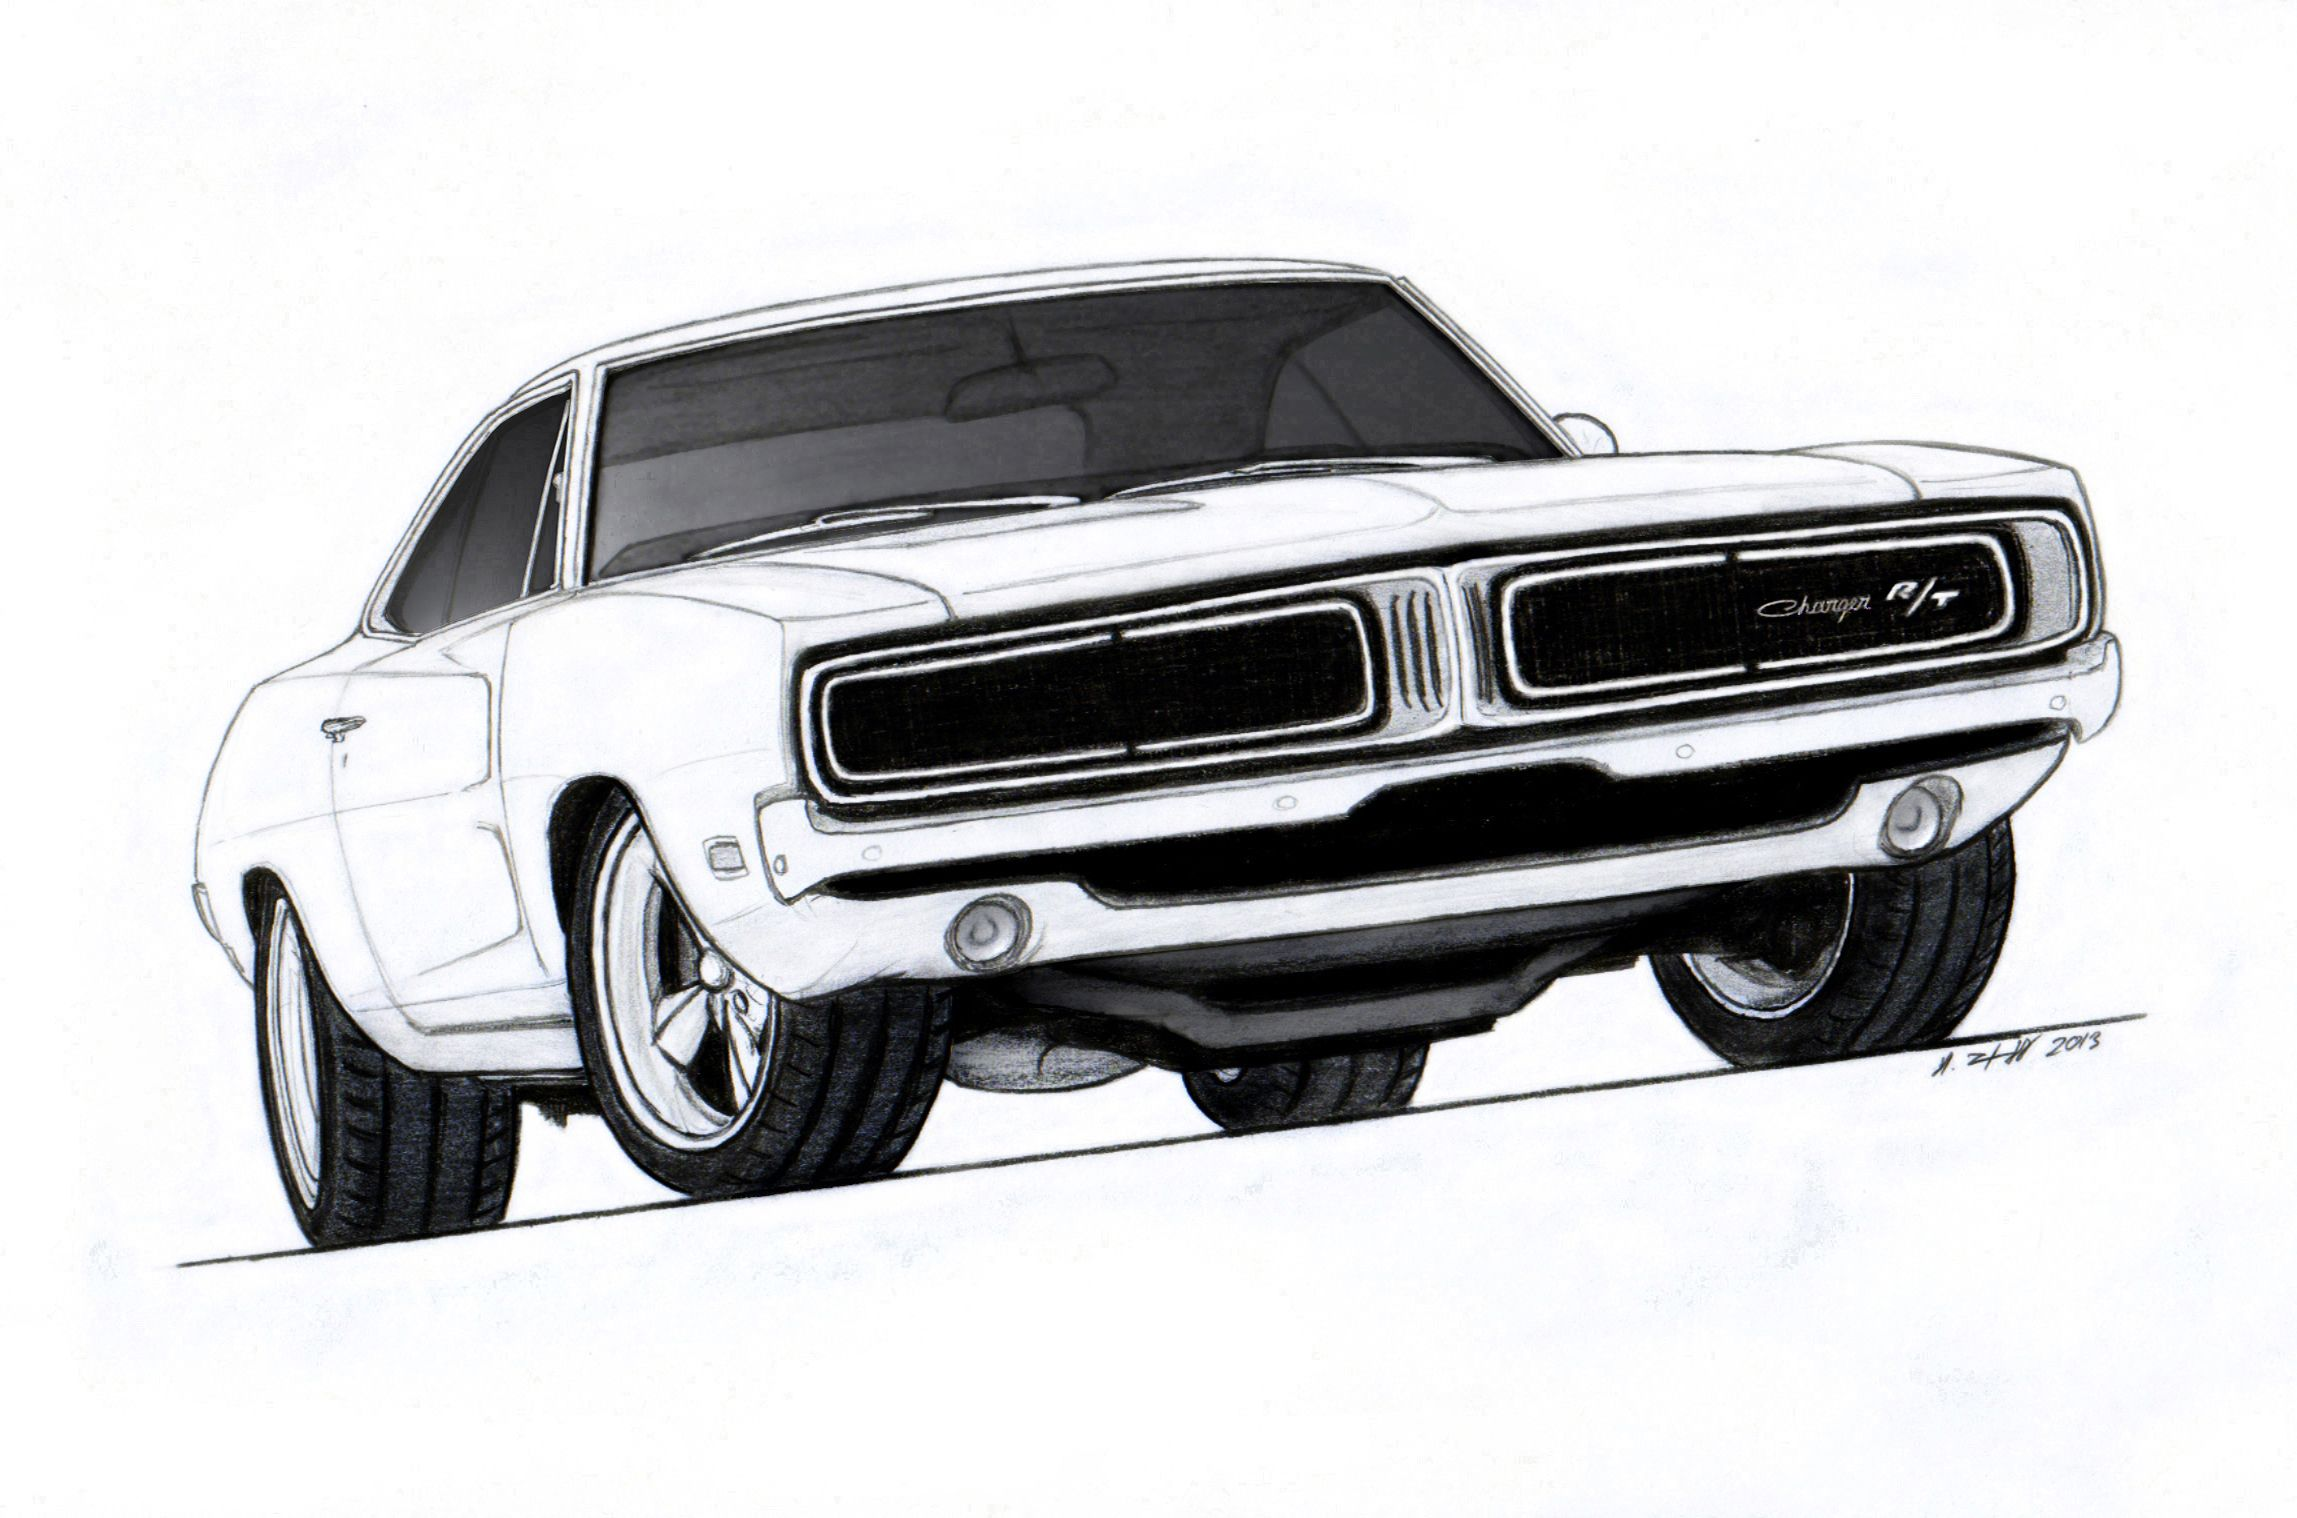 1969 dodge charger r t pro touring drawing by on deviantart. Black Bedroom Furniture Sets. Home Design Ideas